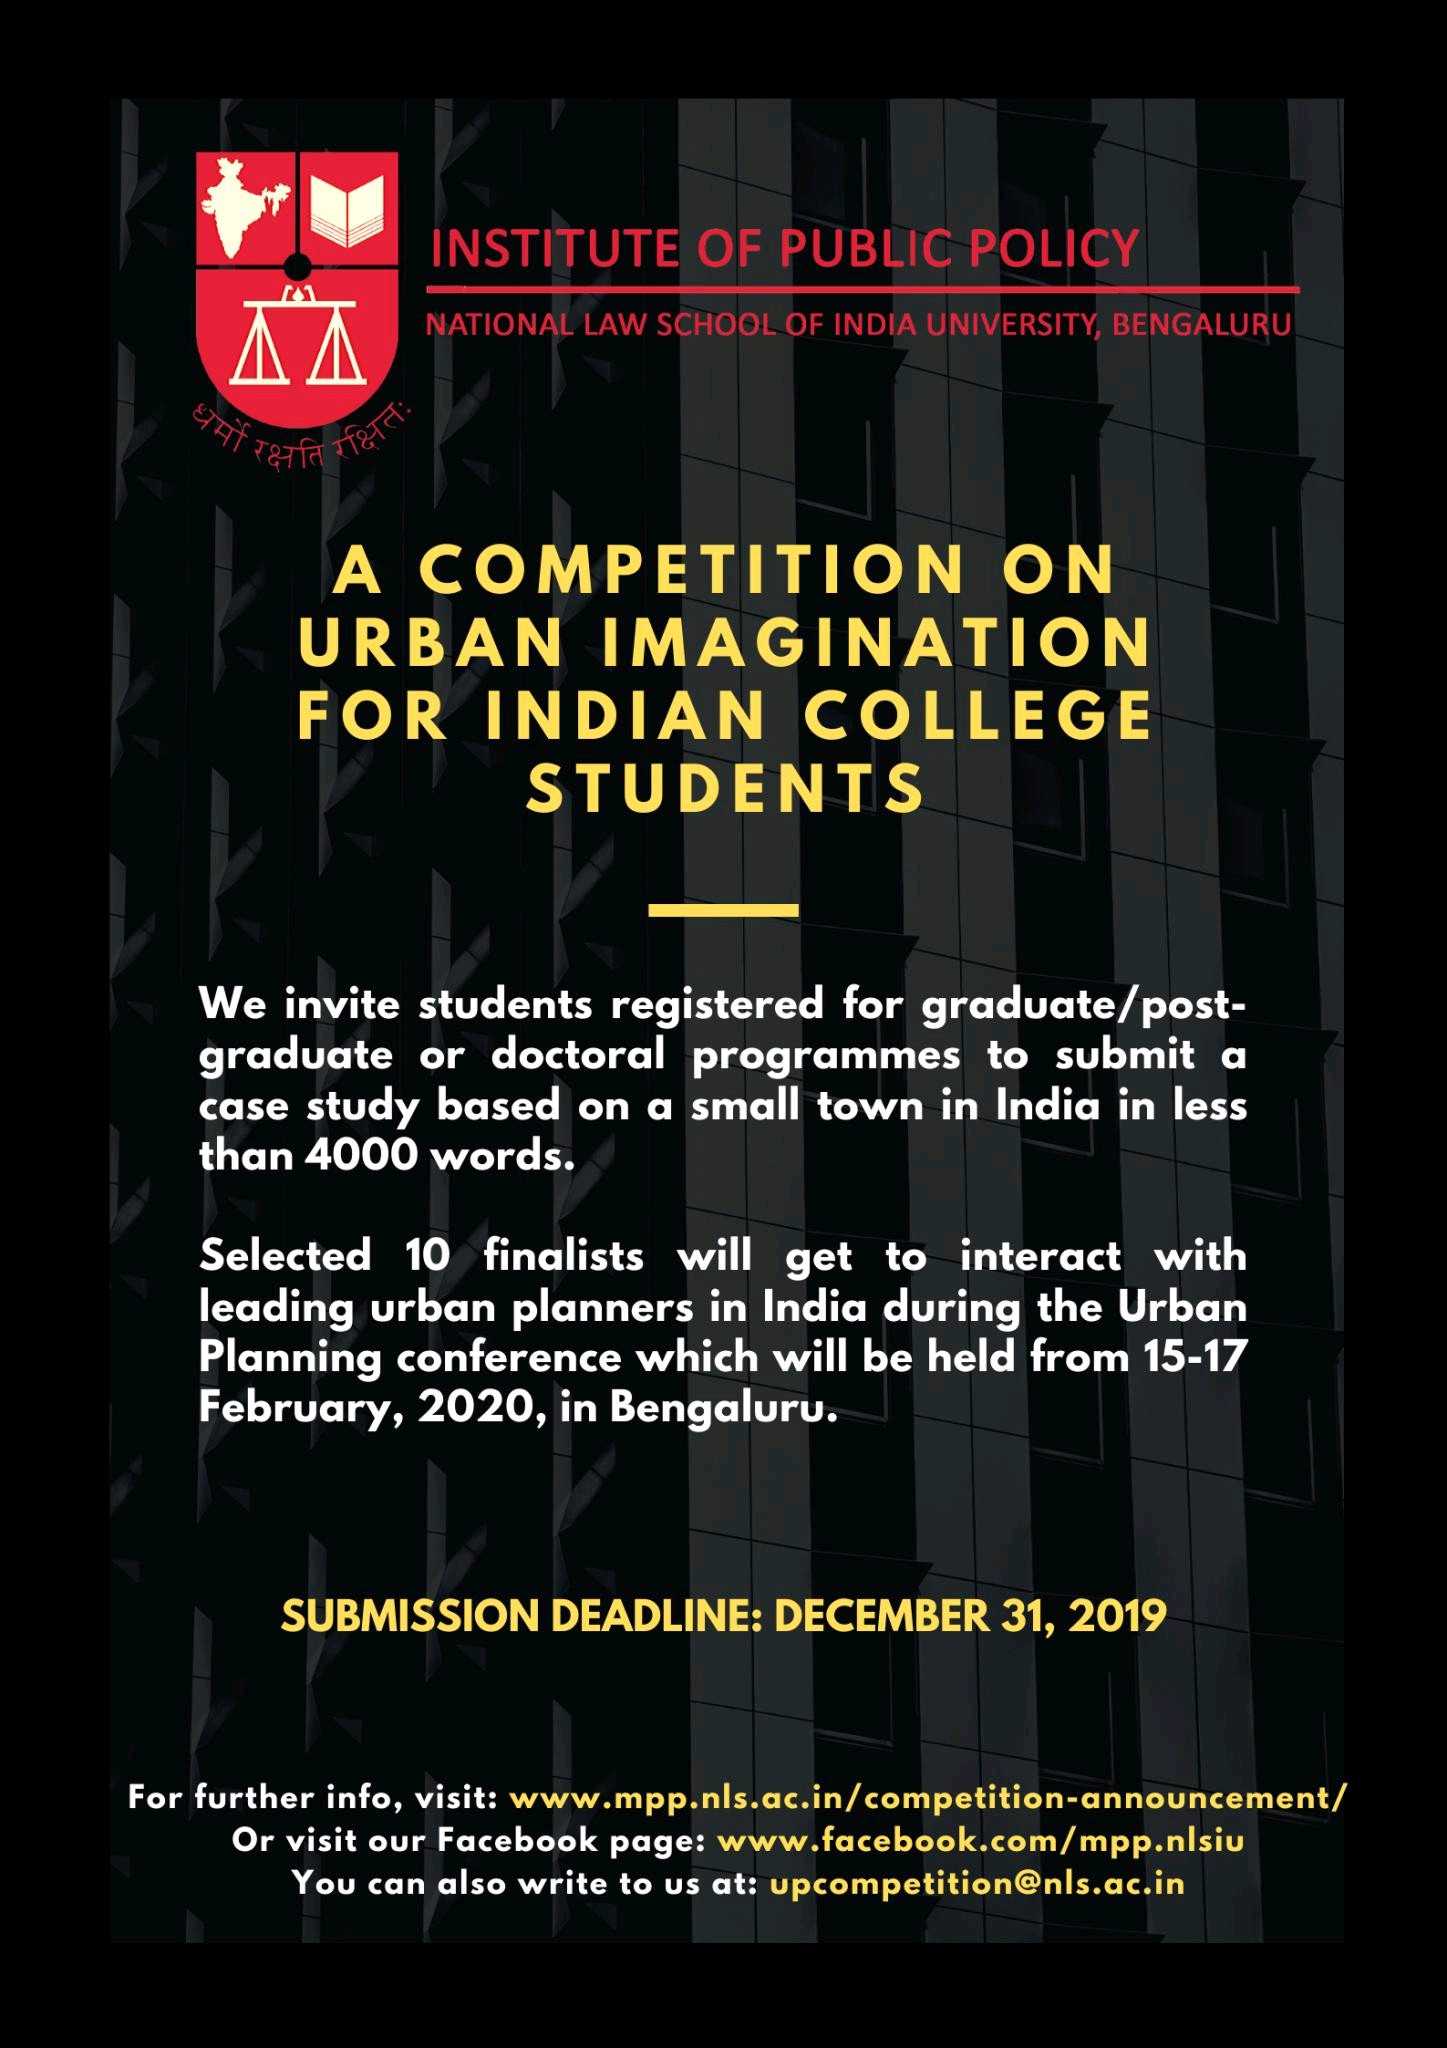 Competition on Urban Imagination by NLSIU, Bangalore